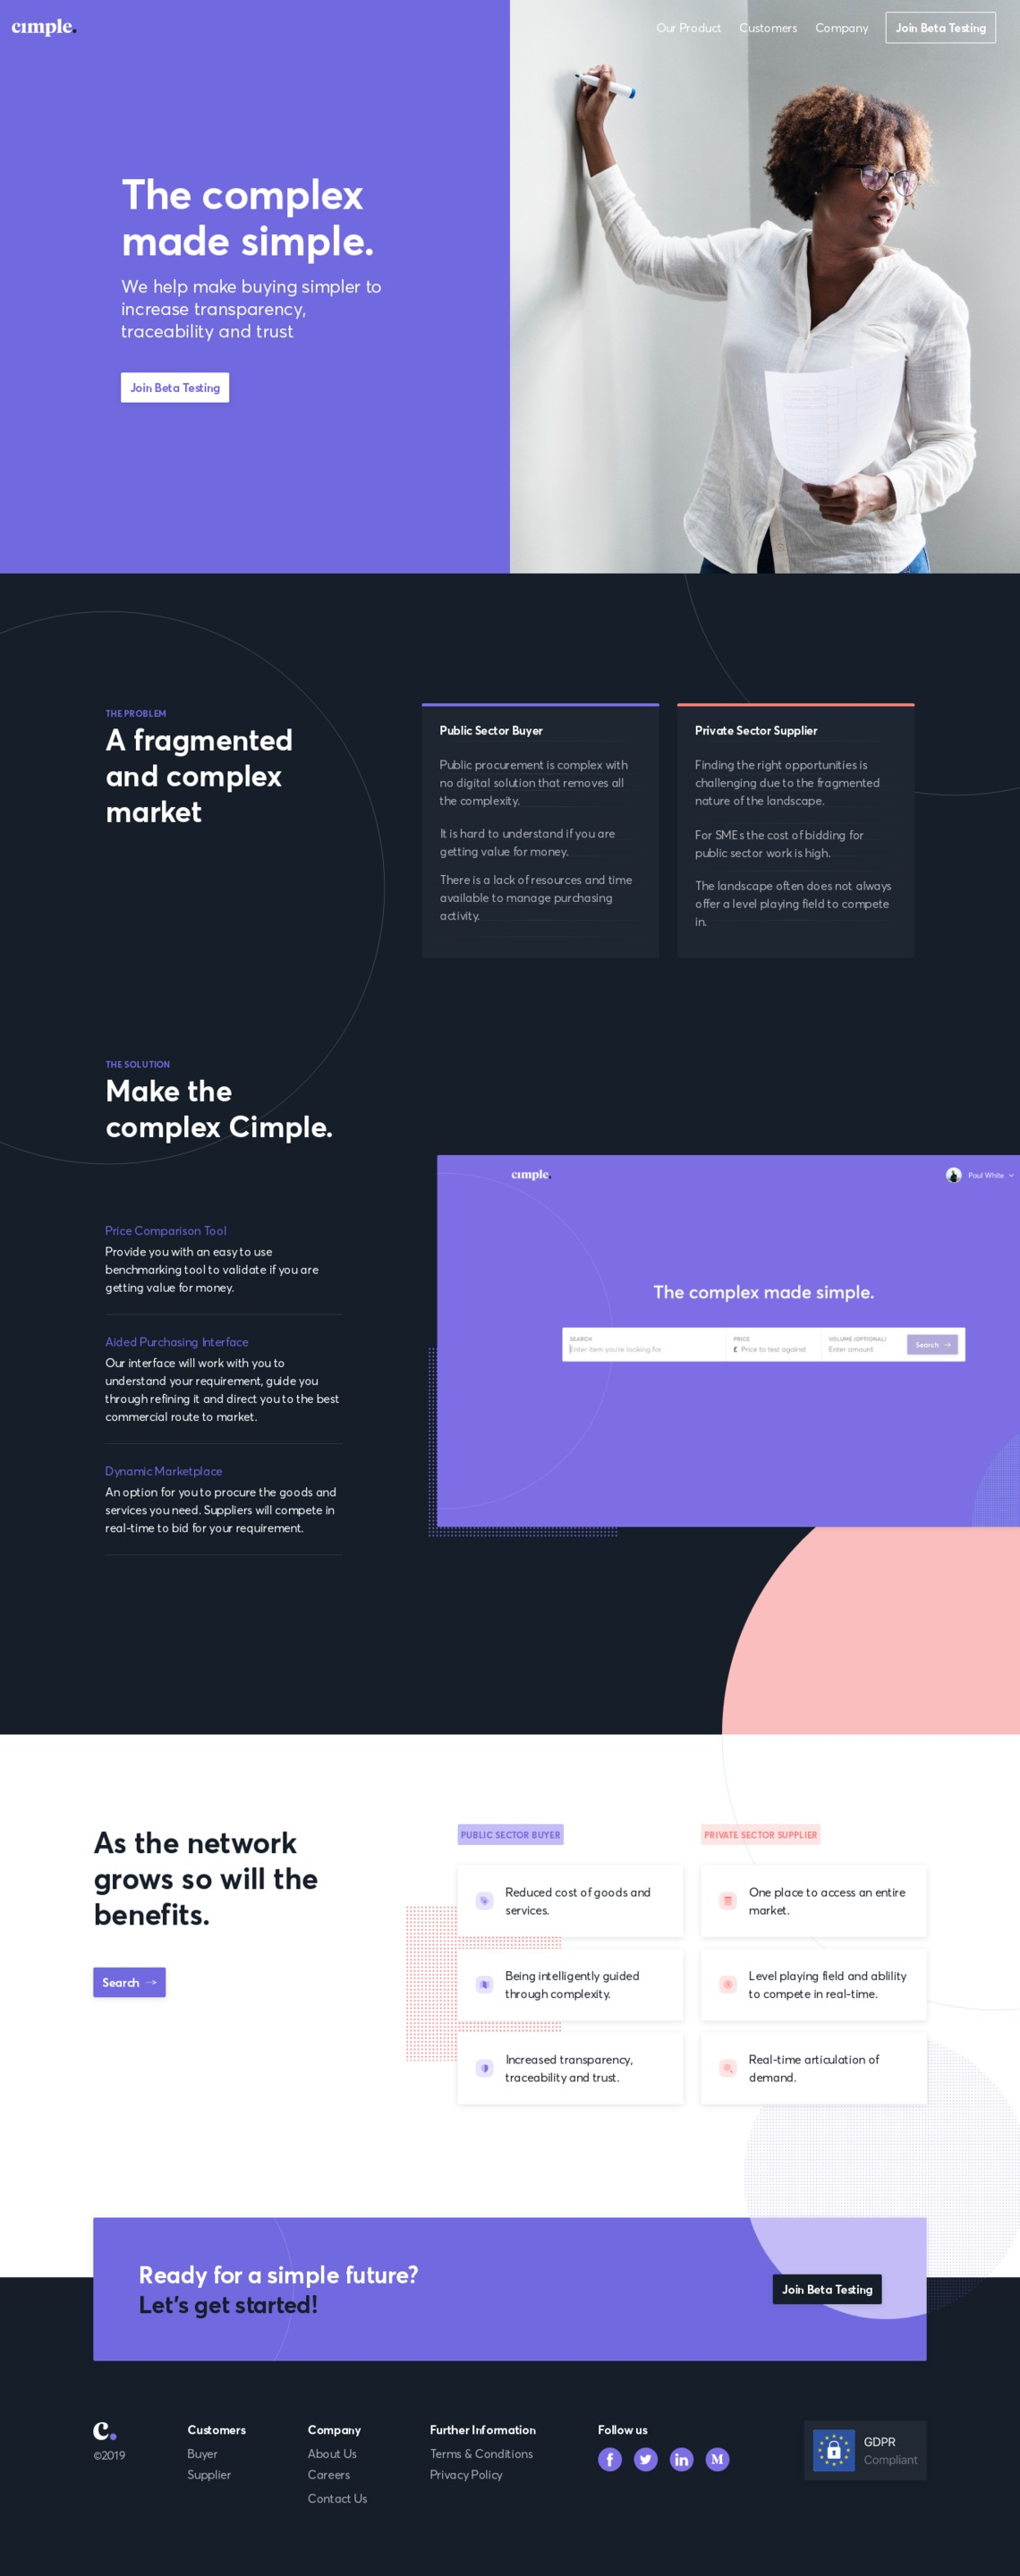 Cimple   Land-book - the finest hand-picked website inspirations